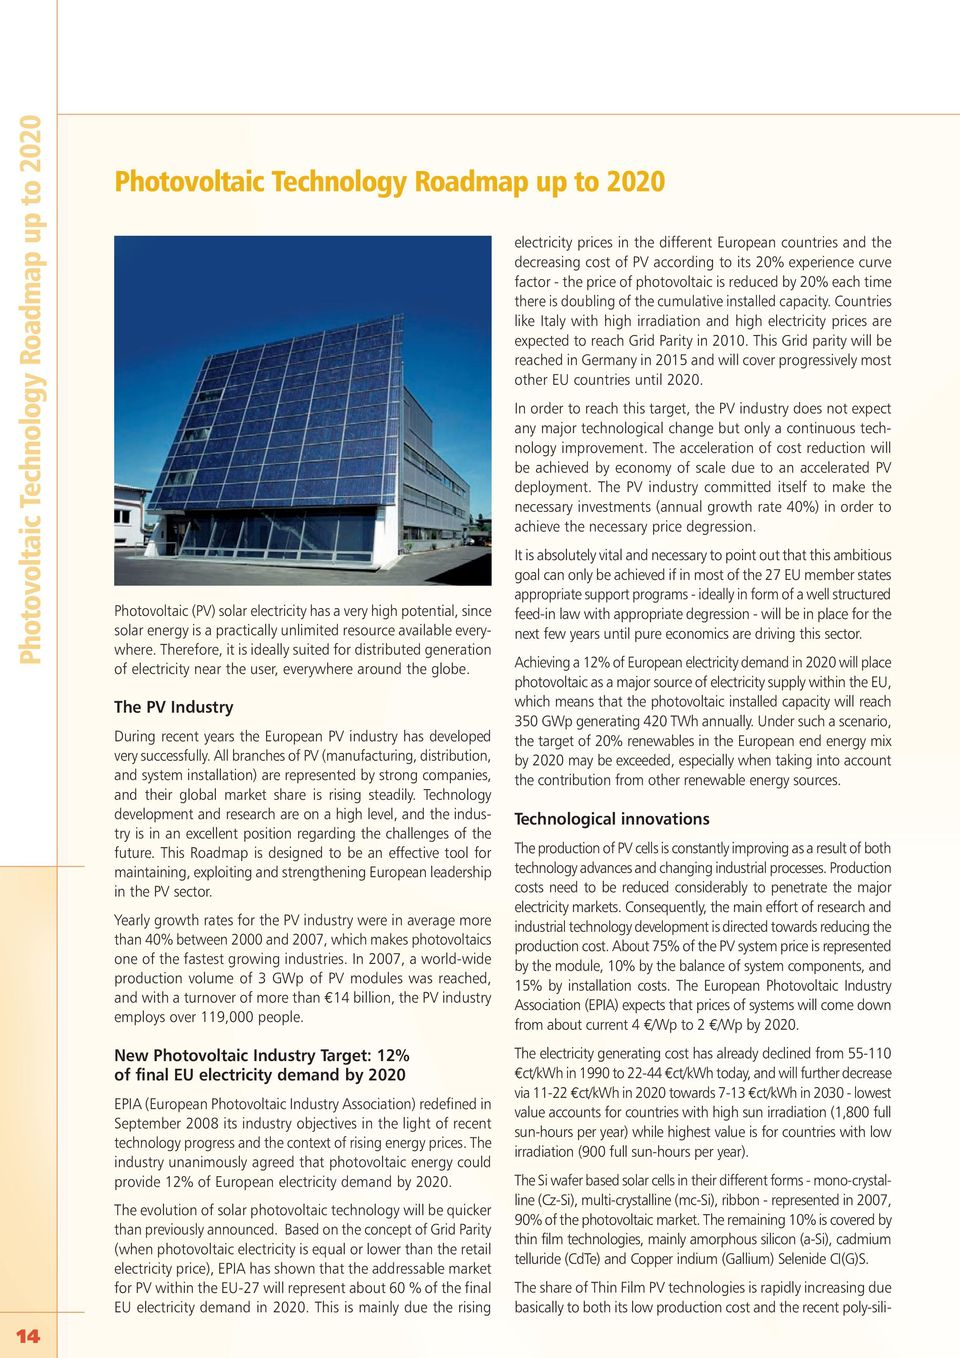 The PV Industry During recent years the European PV industry has developed very successfully.